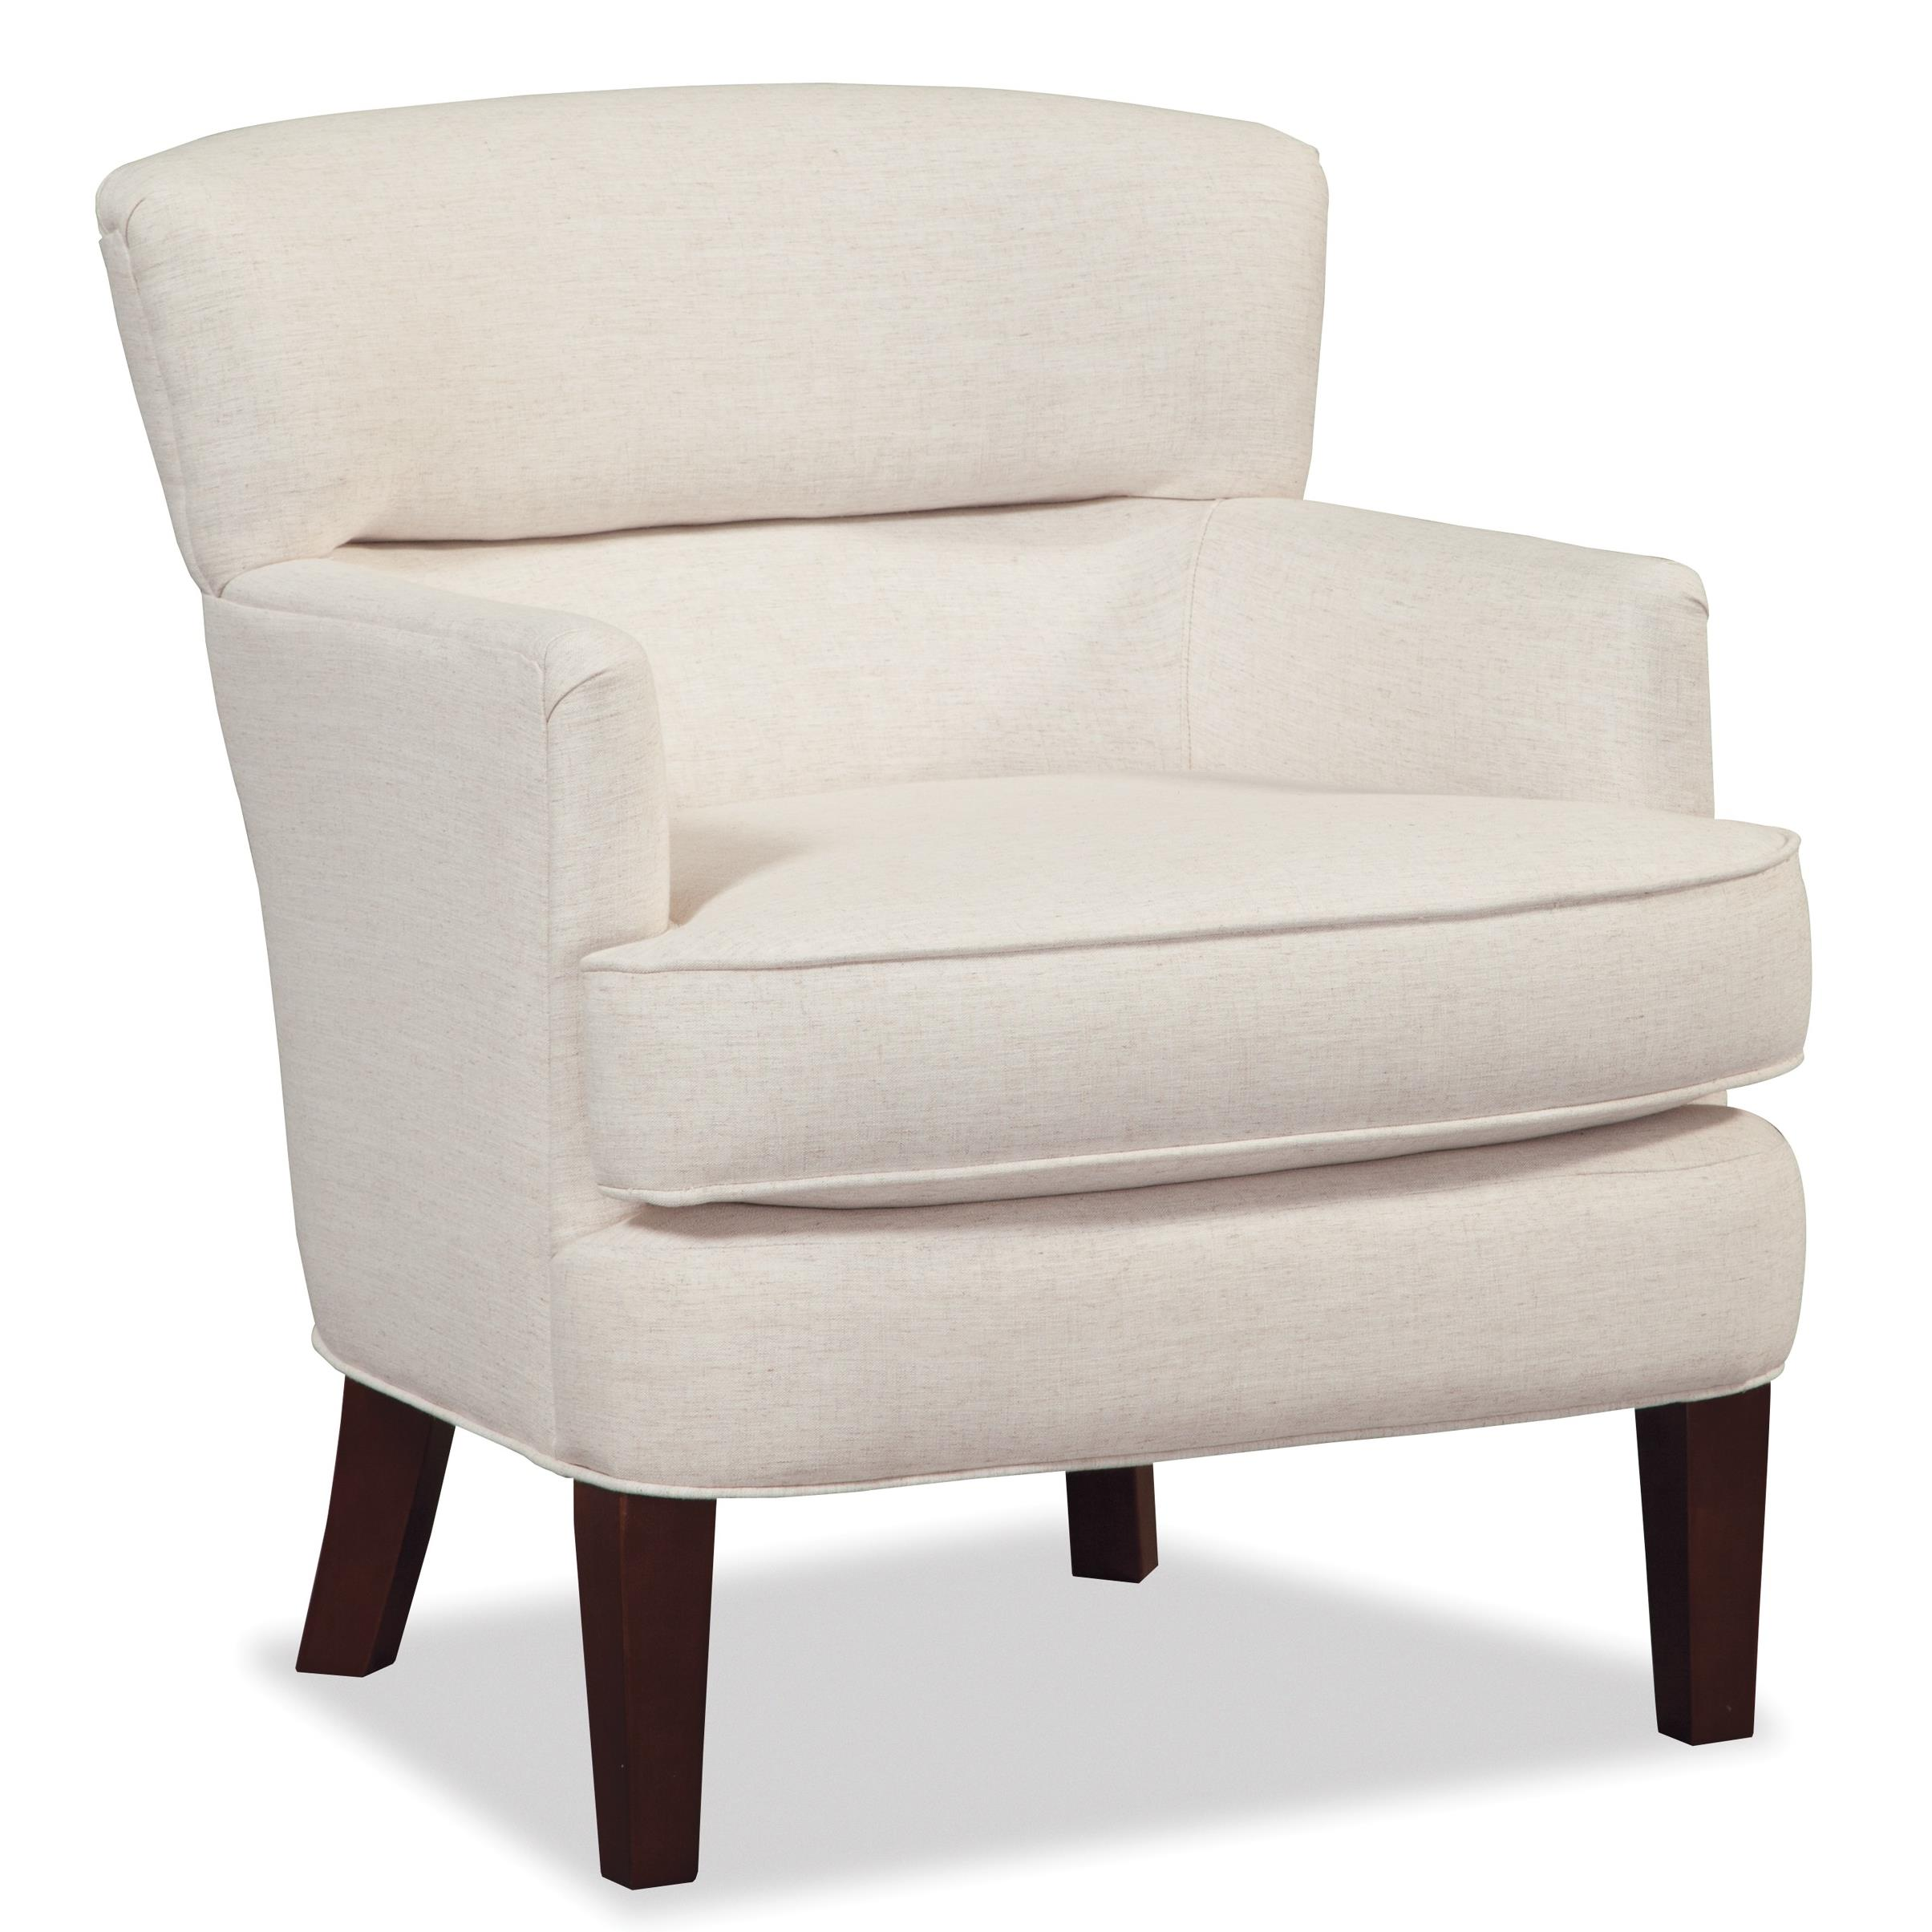 Craftmaster Accent Chairs Accent Chair - Item Number: 053210-BAMBOO-31